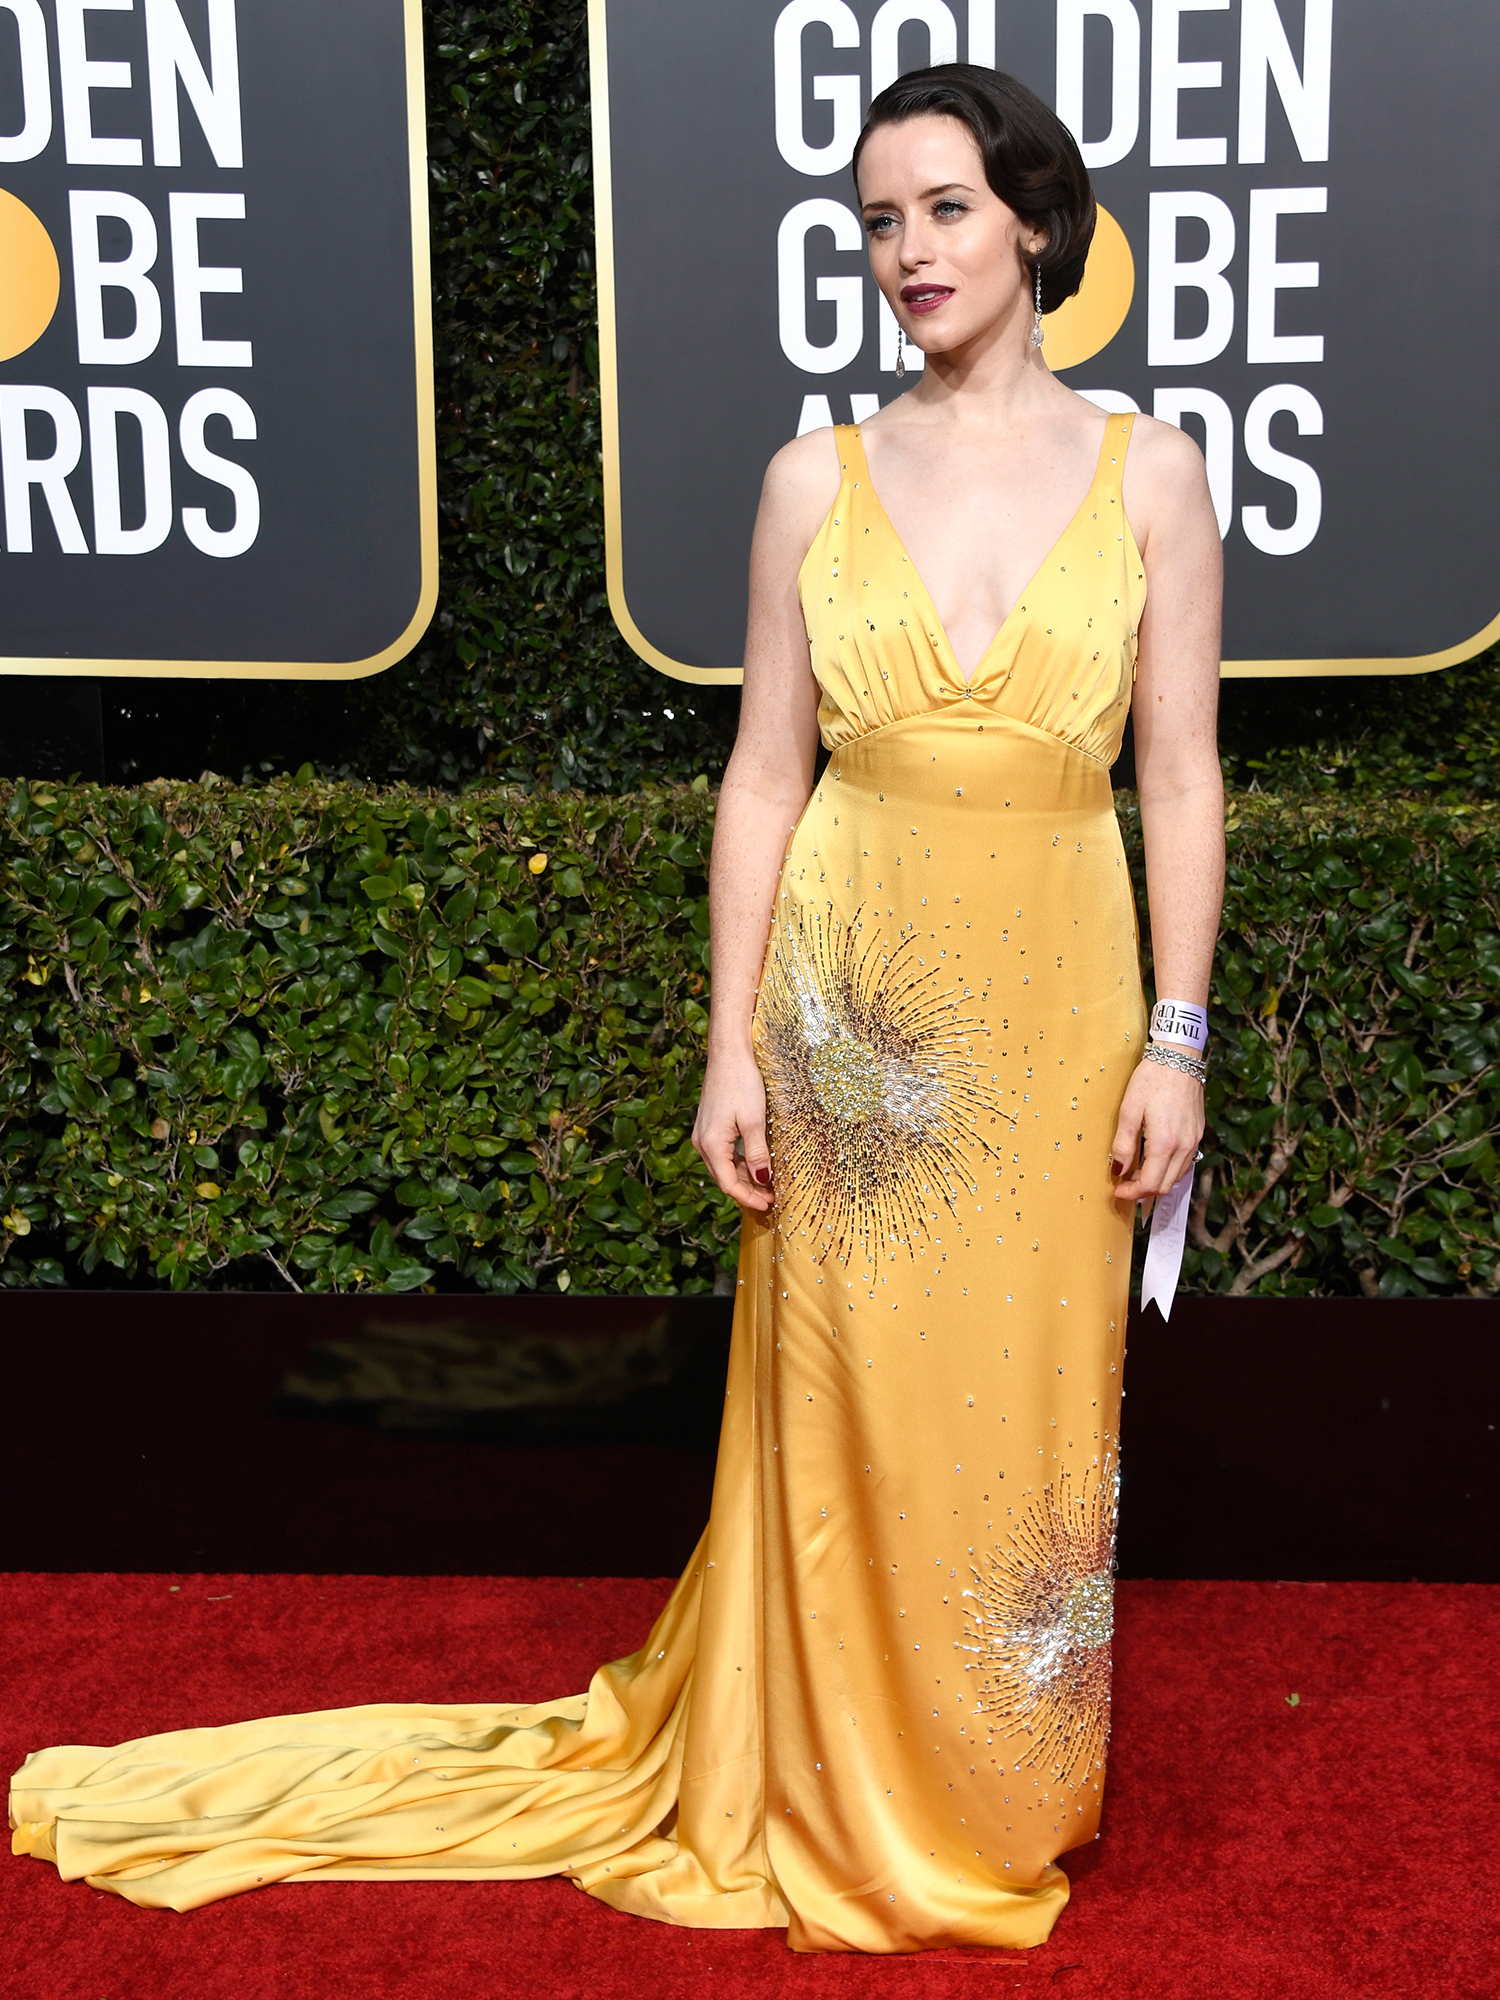 983d6026b6d Golden Globes 2019  All The Pictures